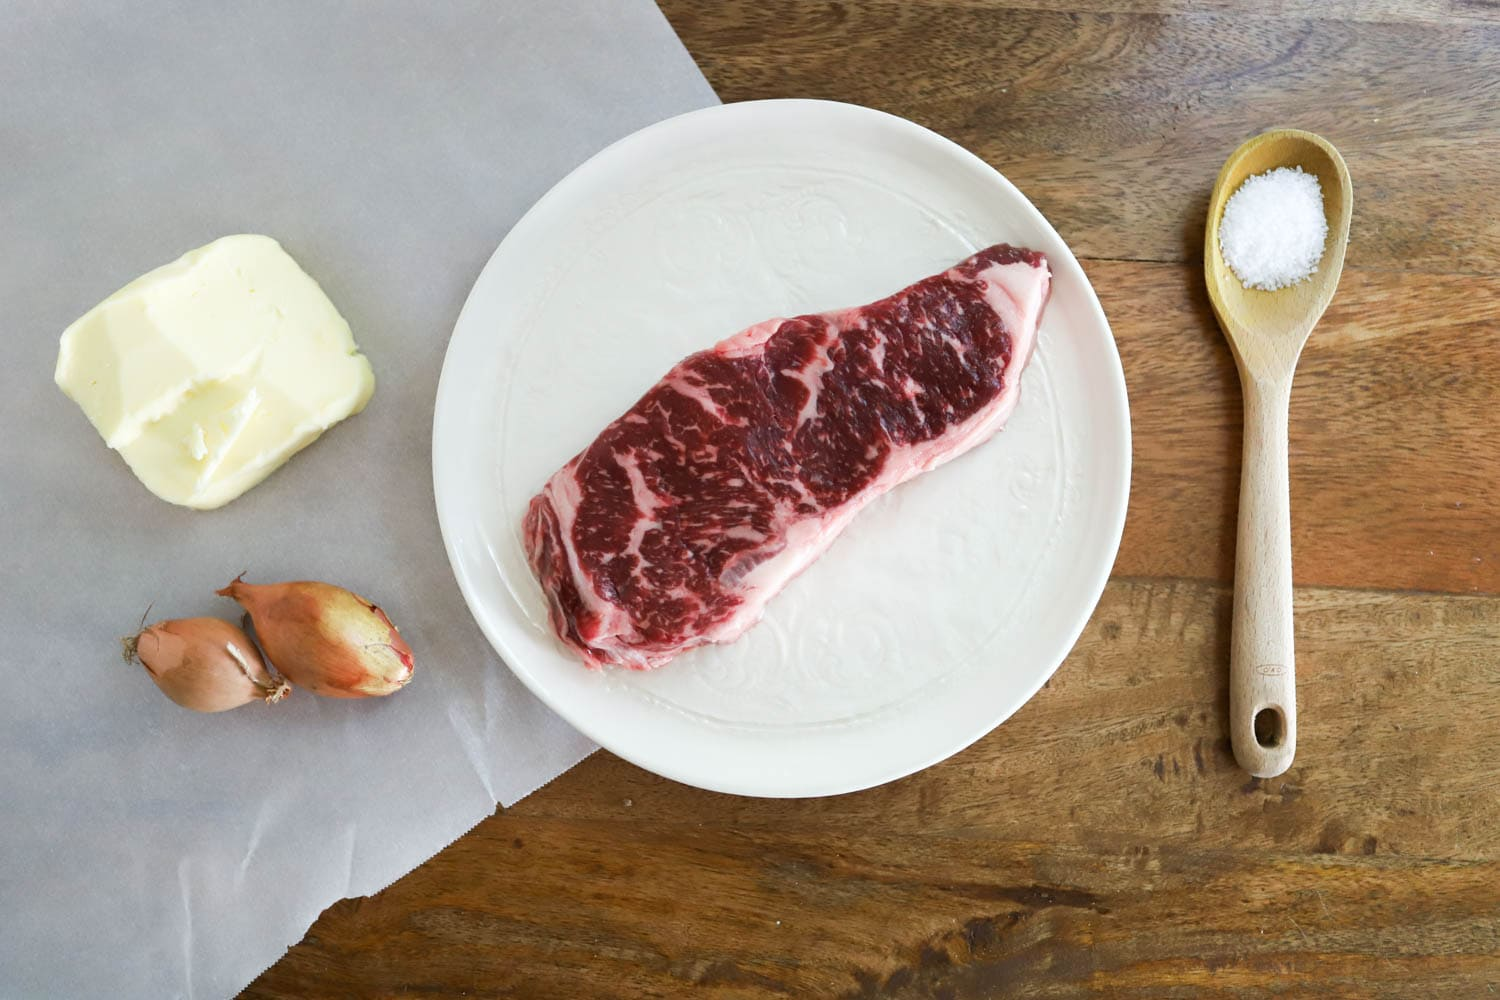 ingredients for ny strip steak on wooden board with parchment paper.